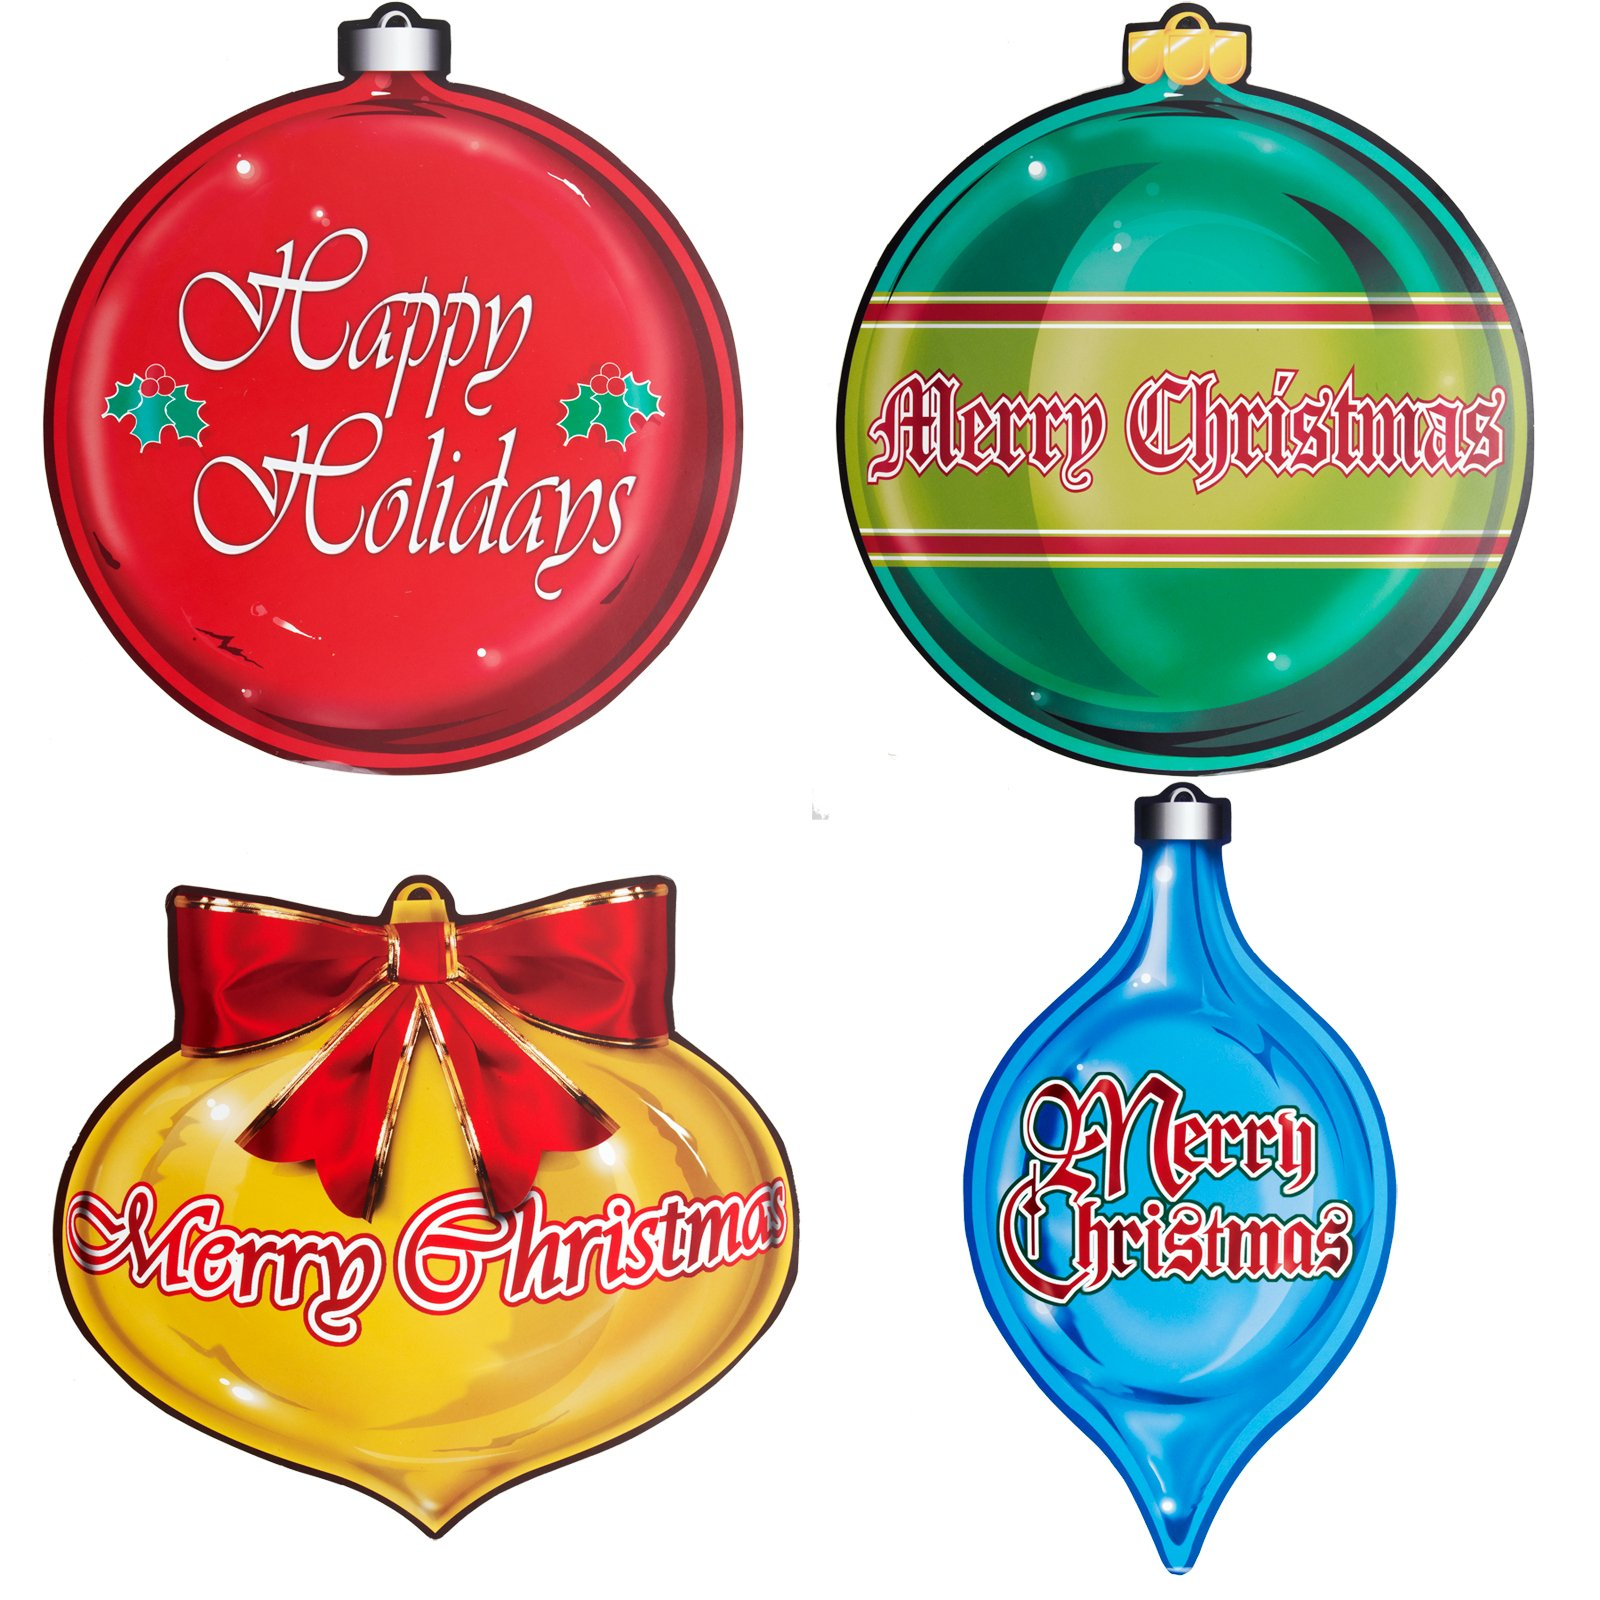 graphic relating to Free Printable Christmas Cutouts called Xmas Decorations Cutouts Free of charge ✓ Chirstmas Decor